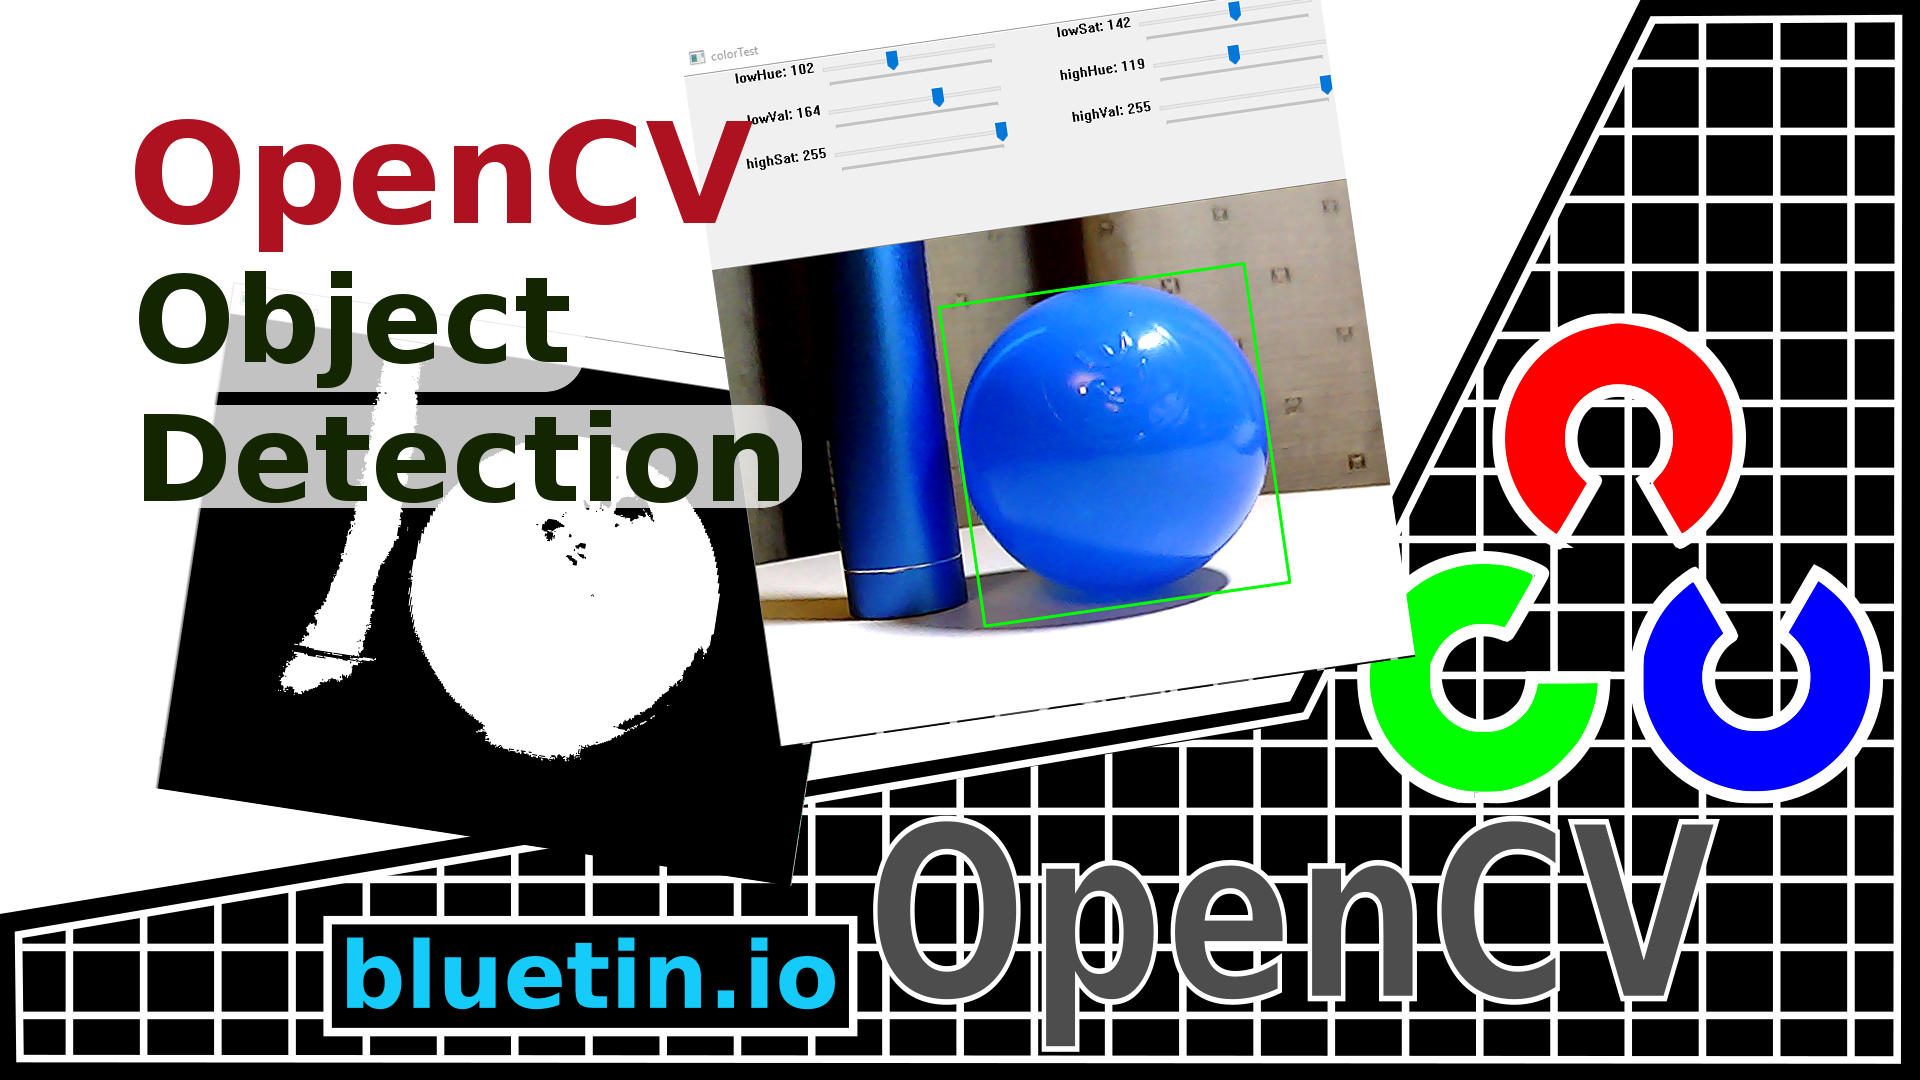 OpenCV Color Detection and Filtering with Python - bluetin io